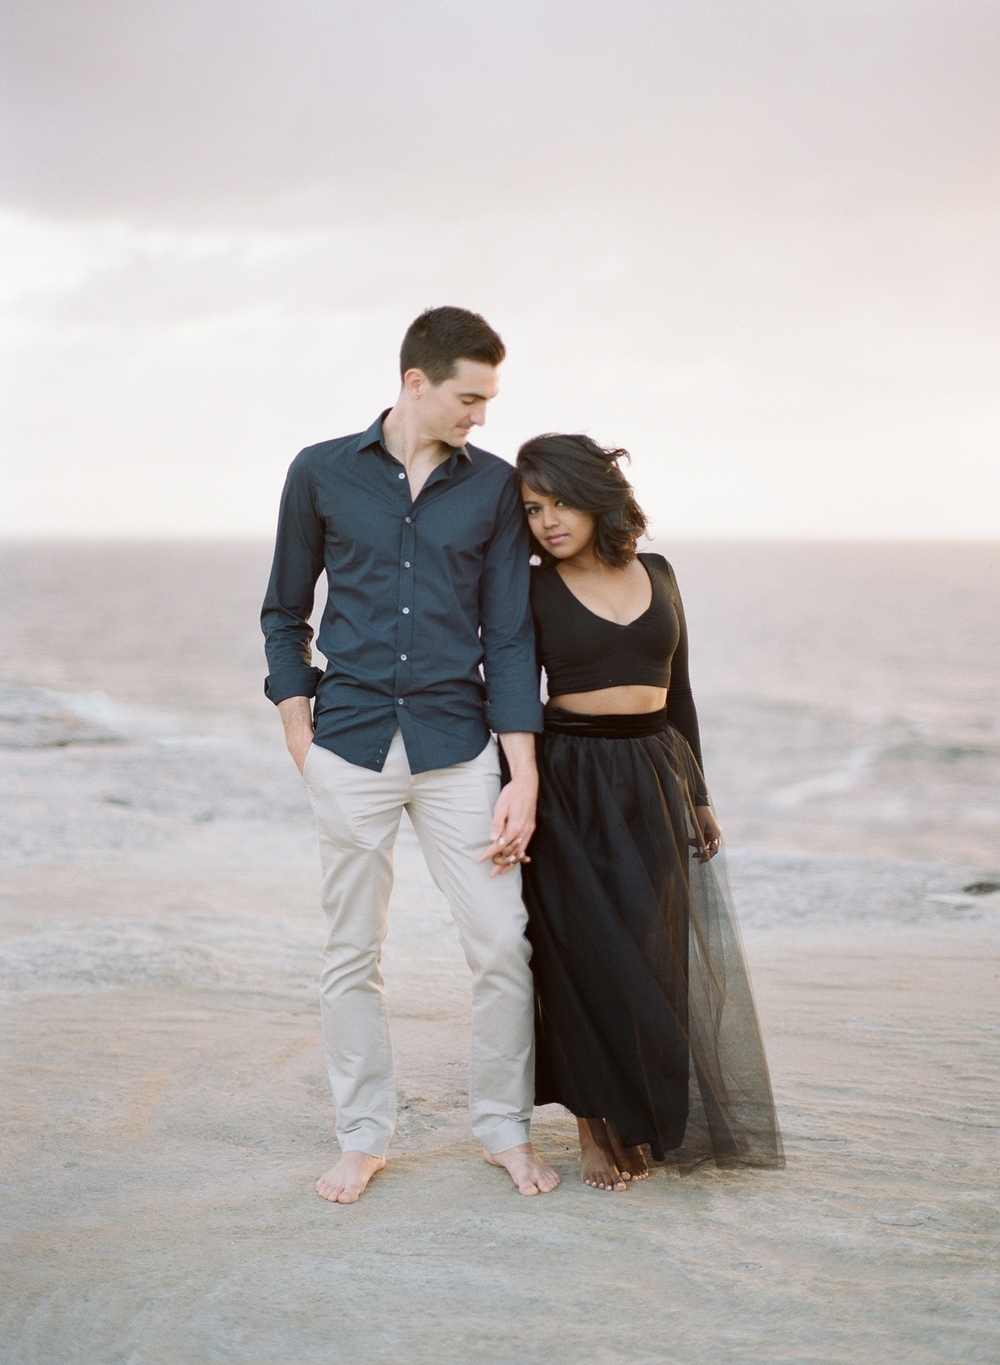 Coastal Sydney couples session by Mr Edwards Photography_0737_1177.jpg